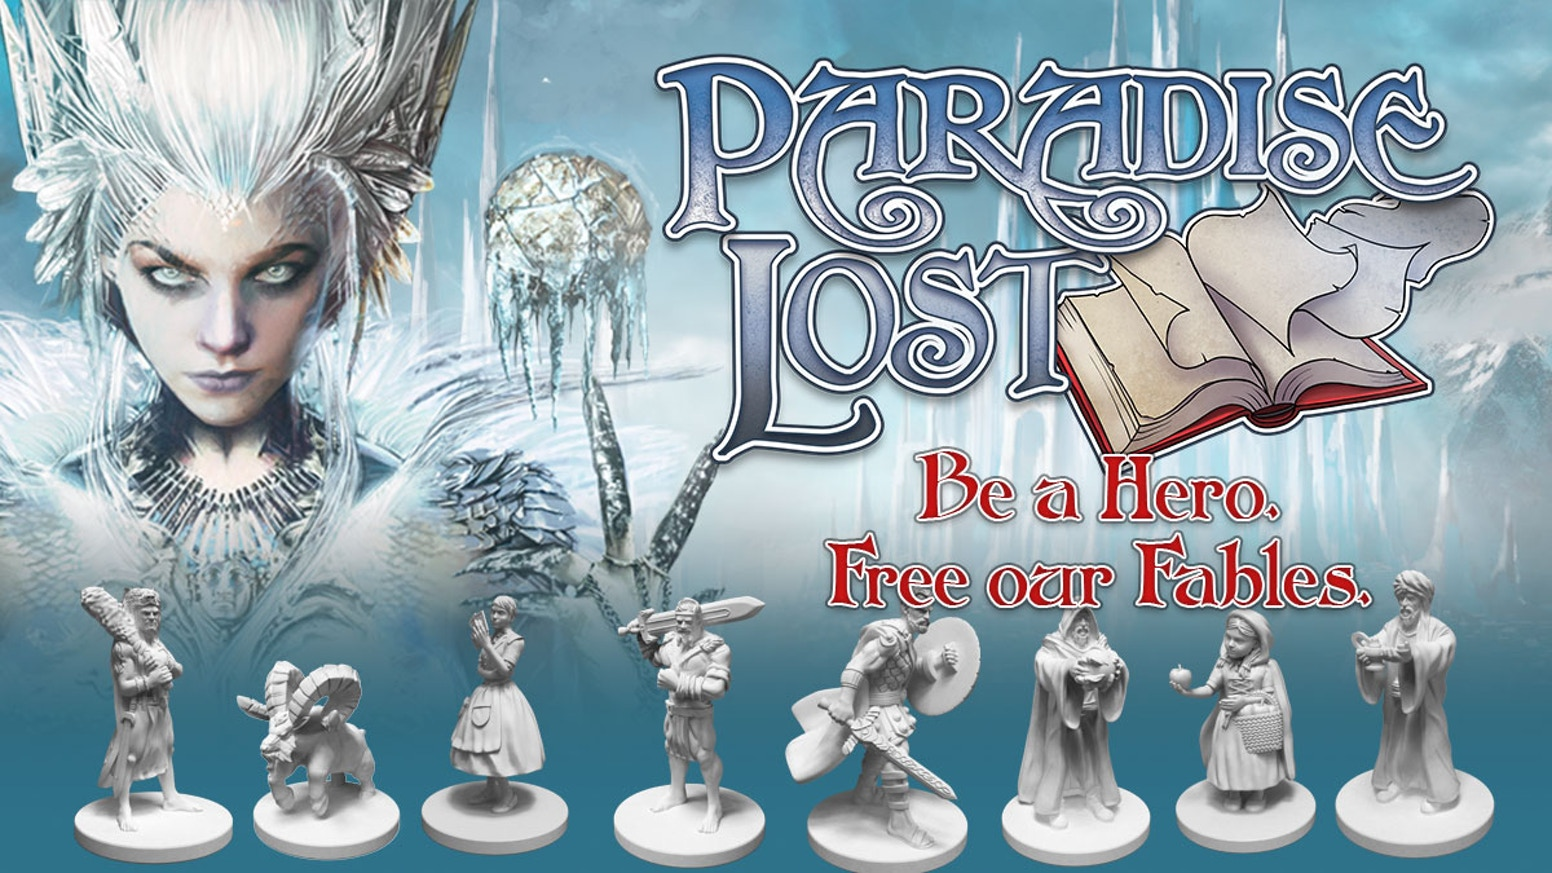 Epic, fantasy deduction boardgame for 2-5 players.  Be a Hero, free our fables as you battle the Ice Witch & restore hope to the world.